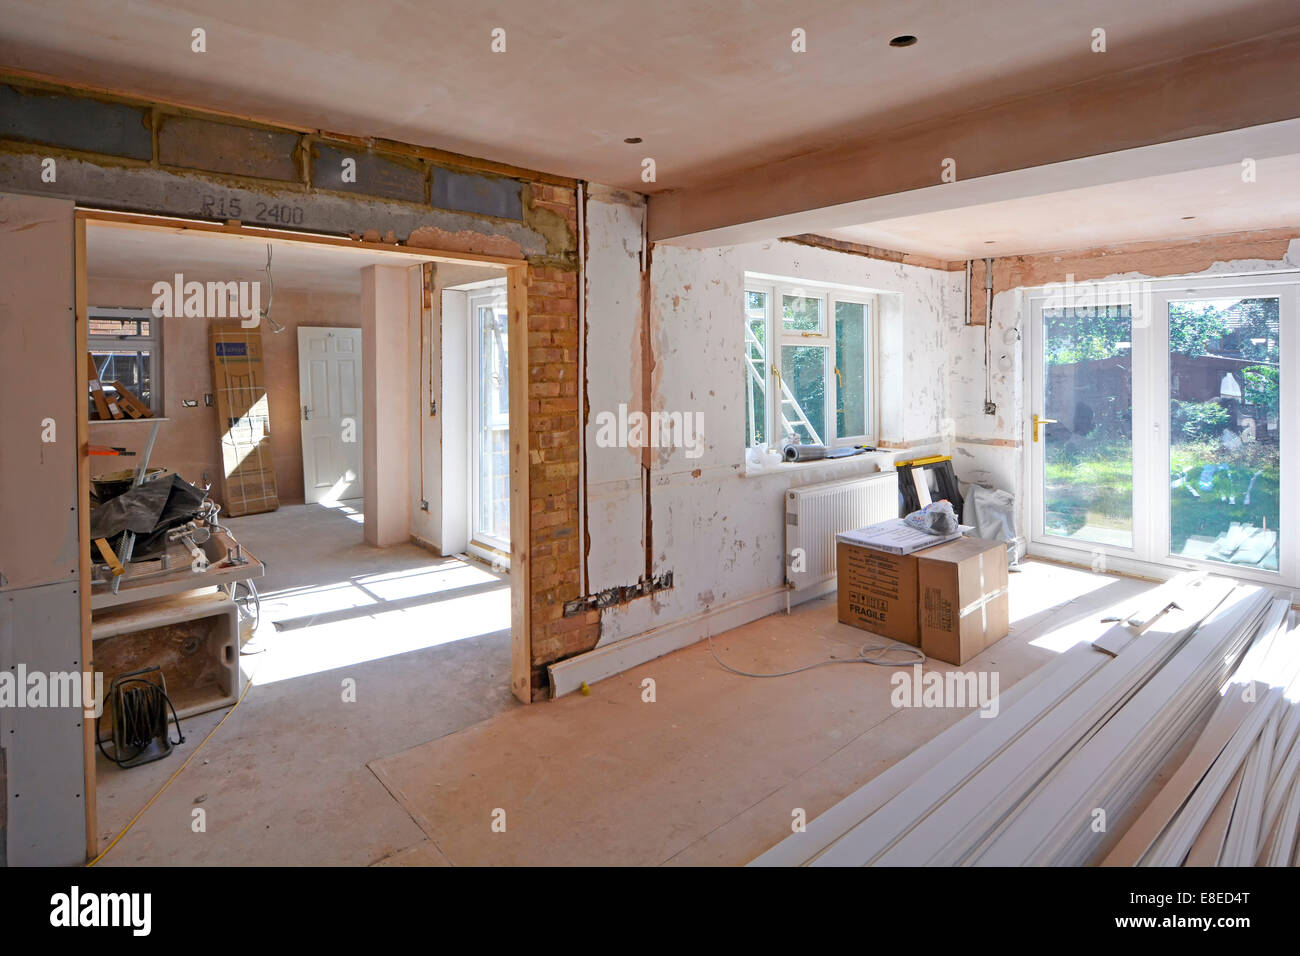 Detached house interior alterations to lounge and dining room (nearest) and side extension for new kitchen (distant) - Stock Image